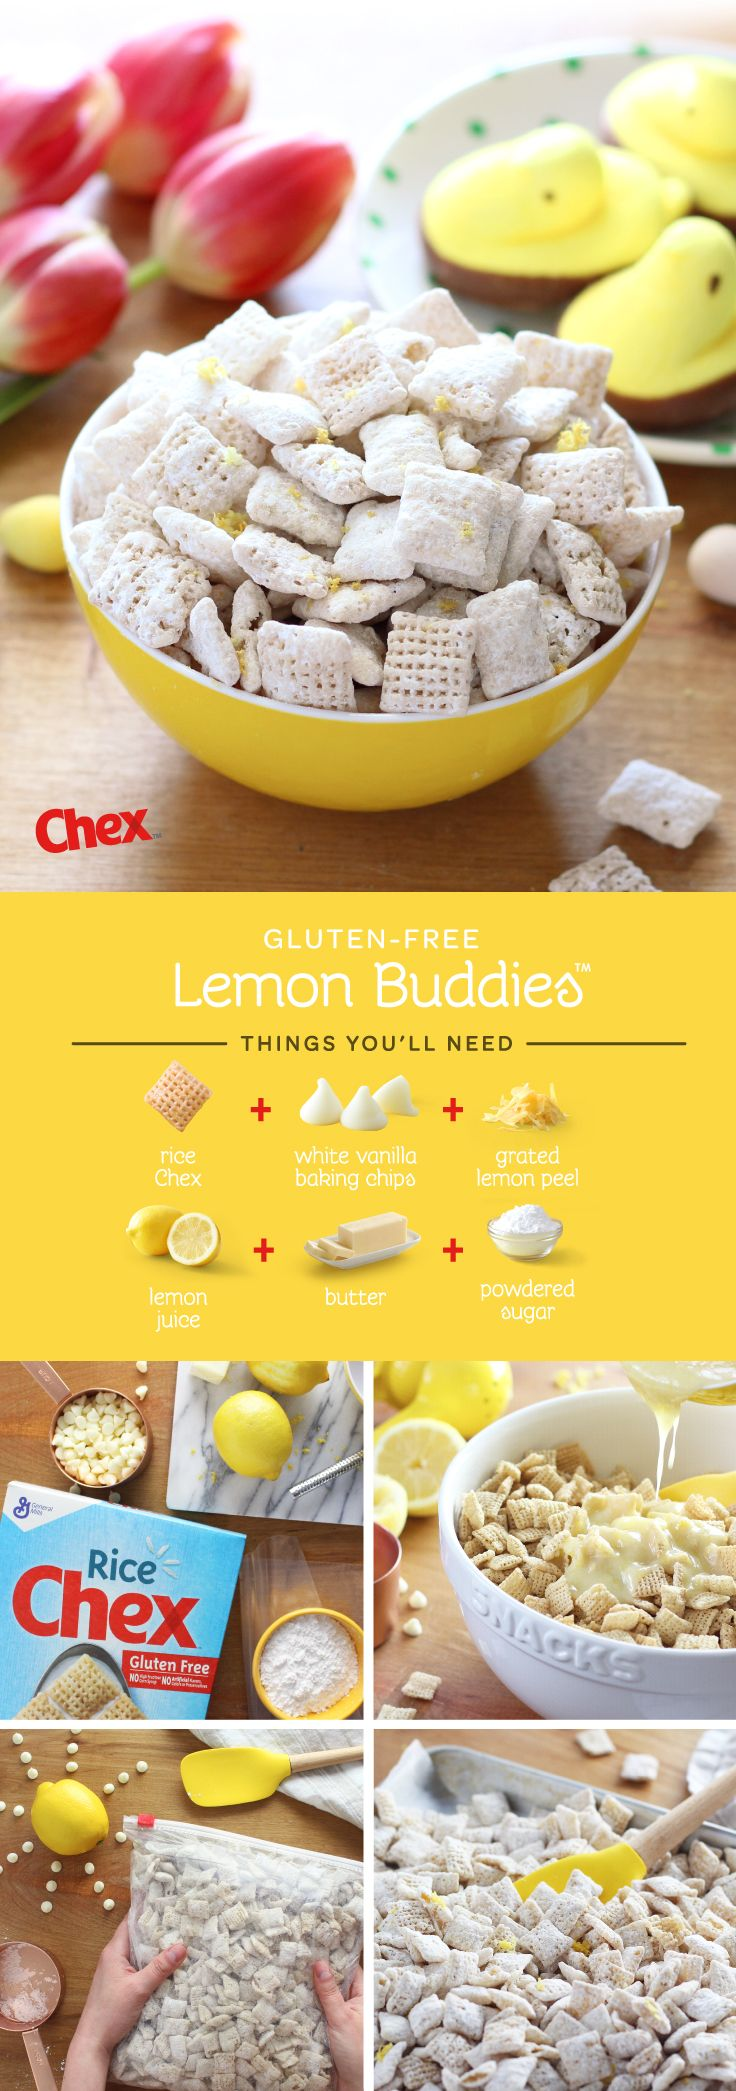 Made with fresh, real lemon flavor and a touch of sweetness, Lemon Buddies are here for Spring! Ready in 15 minutes and with just 4 ingredients, they make the perfect snack for Easter Brunch or any Spring celebration.